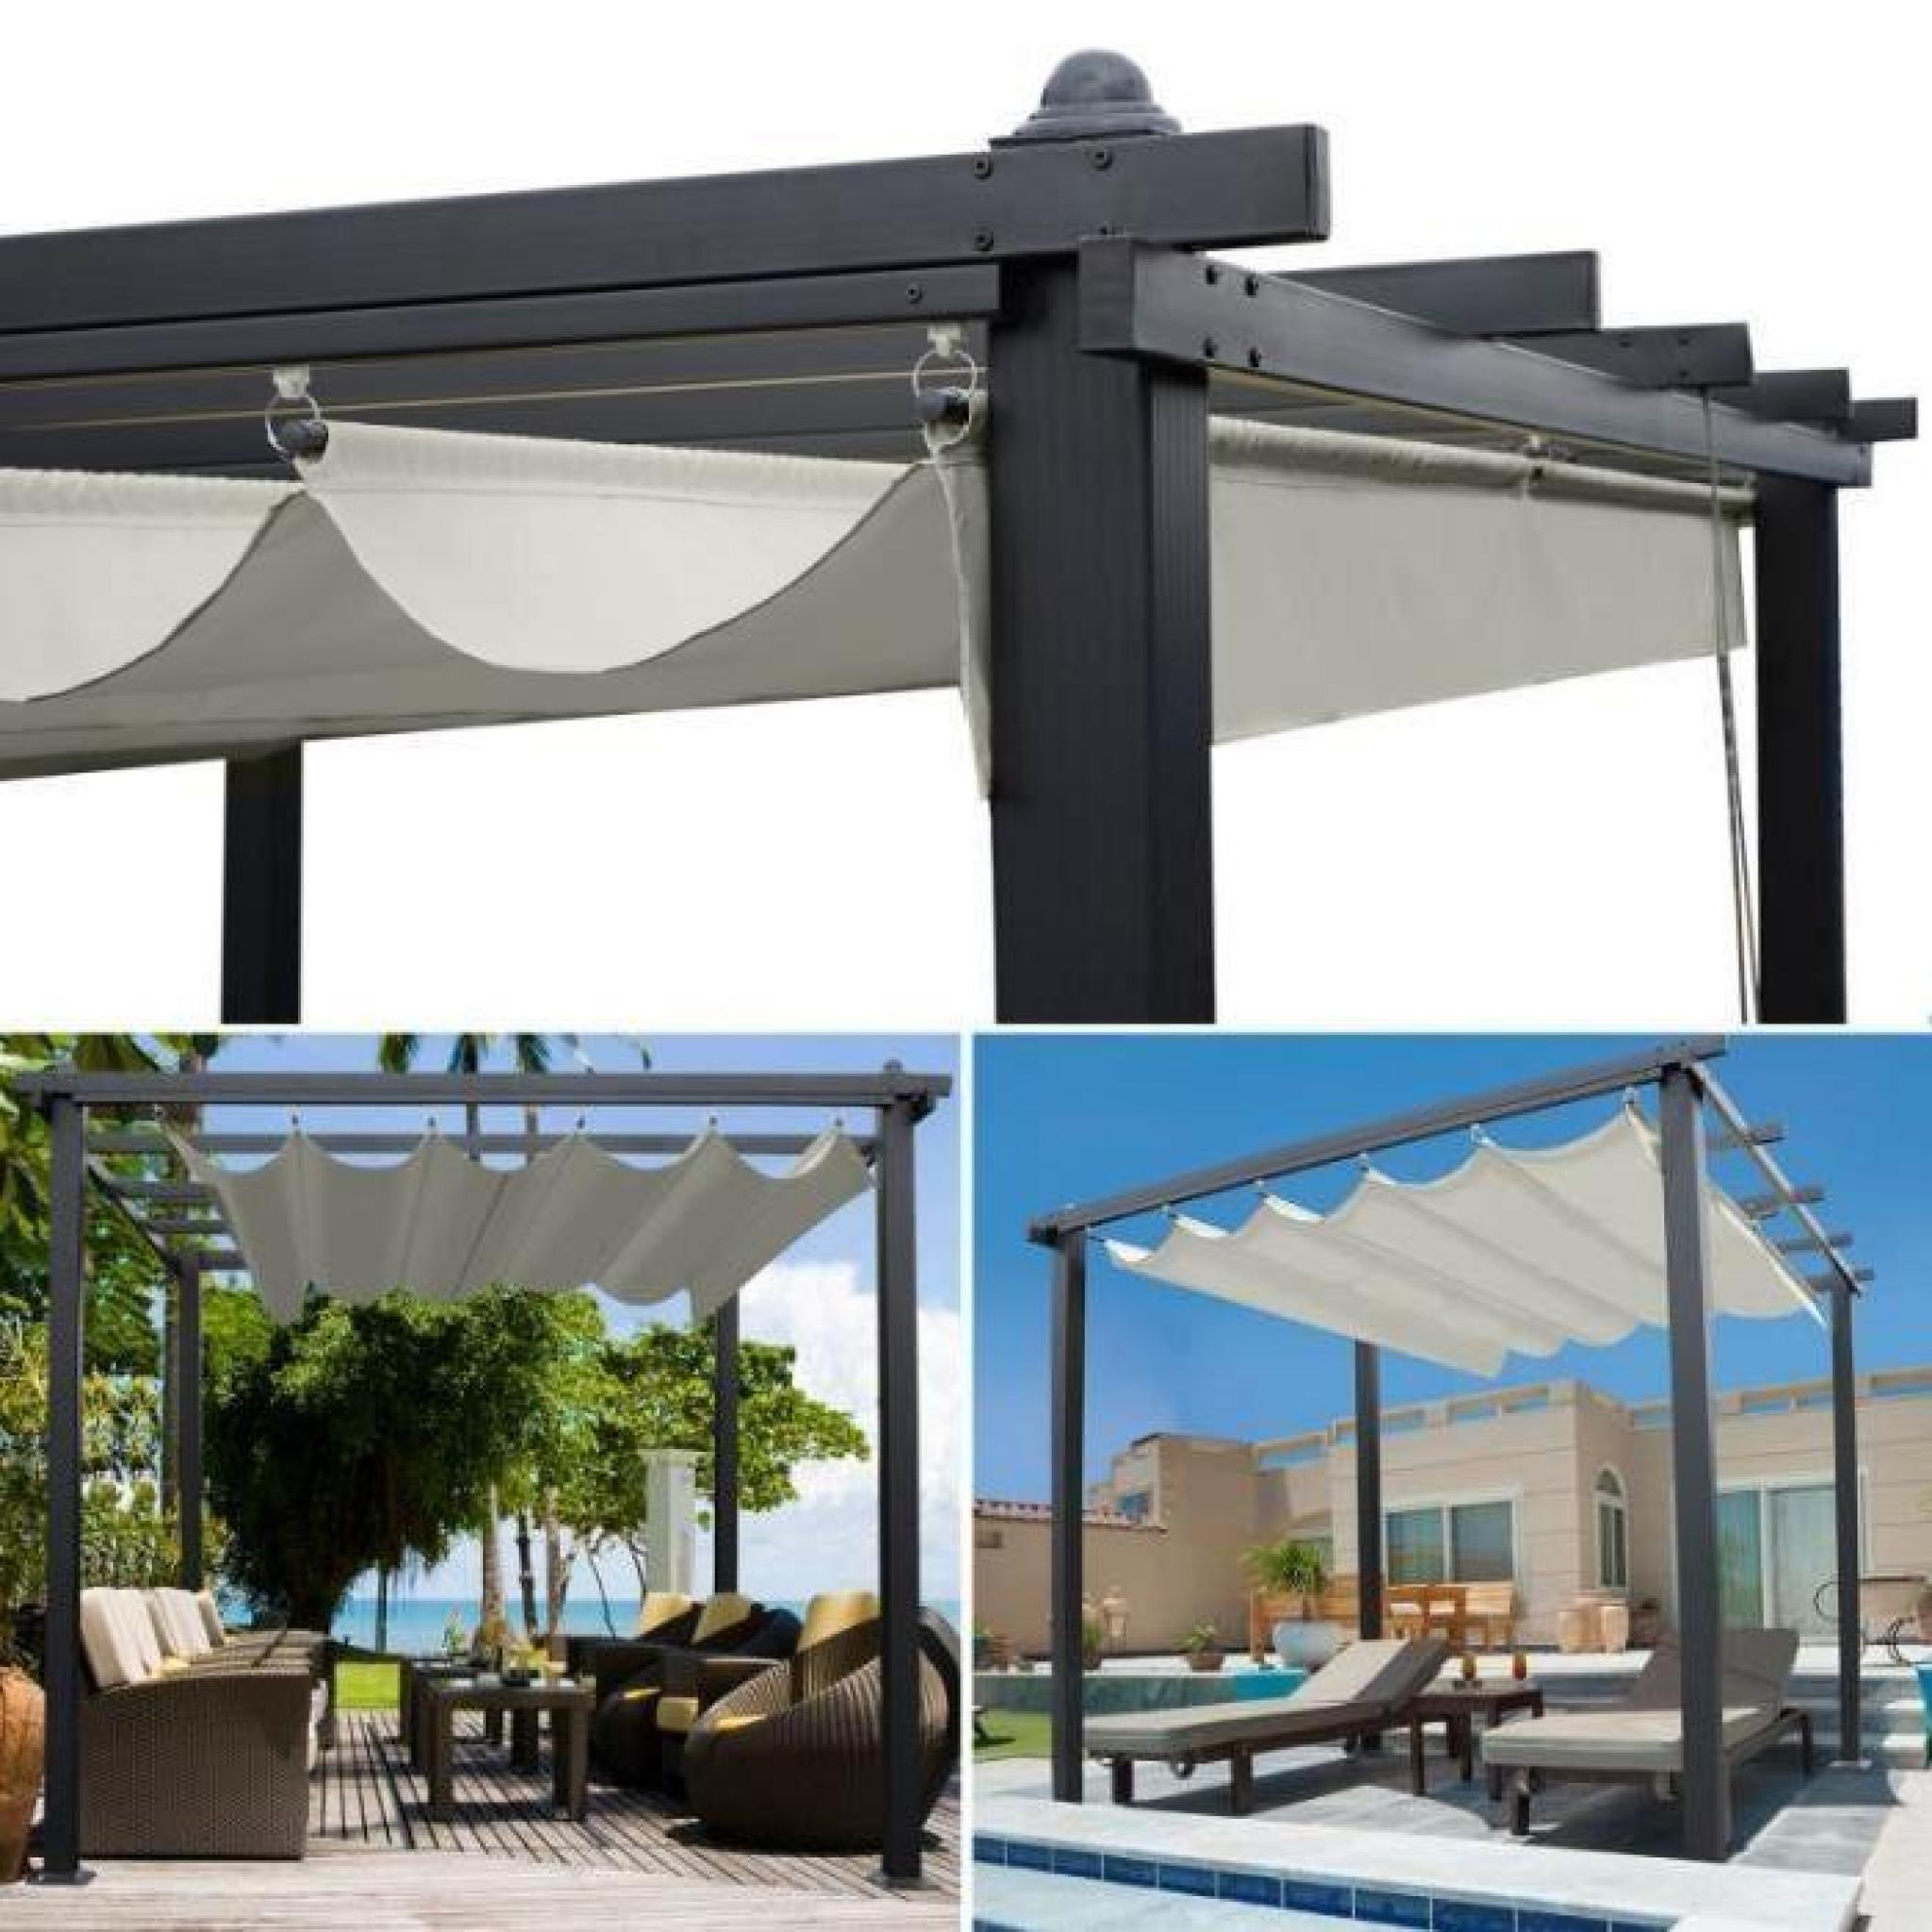 pergola toit r tractable crue tonnelle 4 pieds 3x3m achat vente pergola en aluminium pas cher. Black Bedroom Furniture Sets. Home Design Ideas